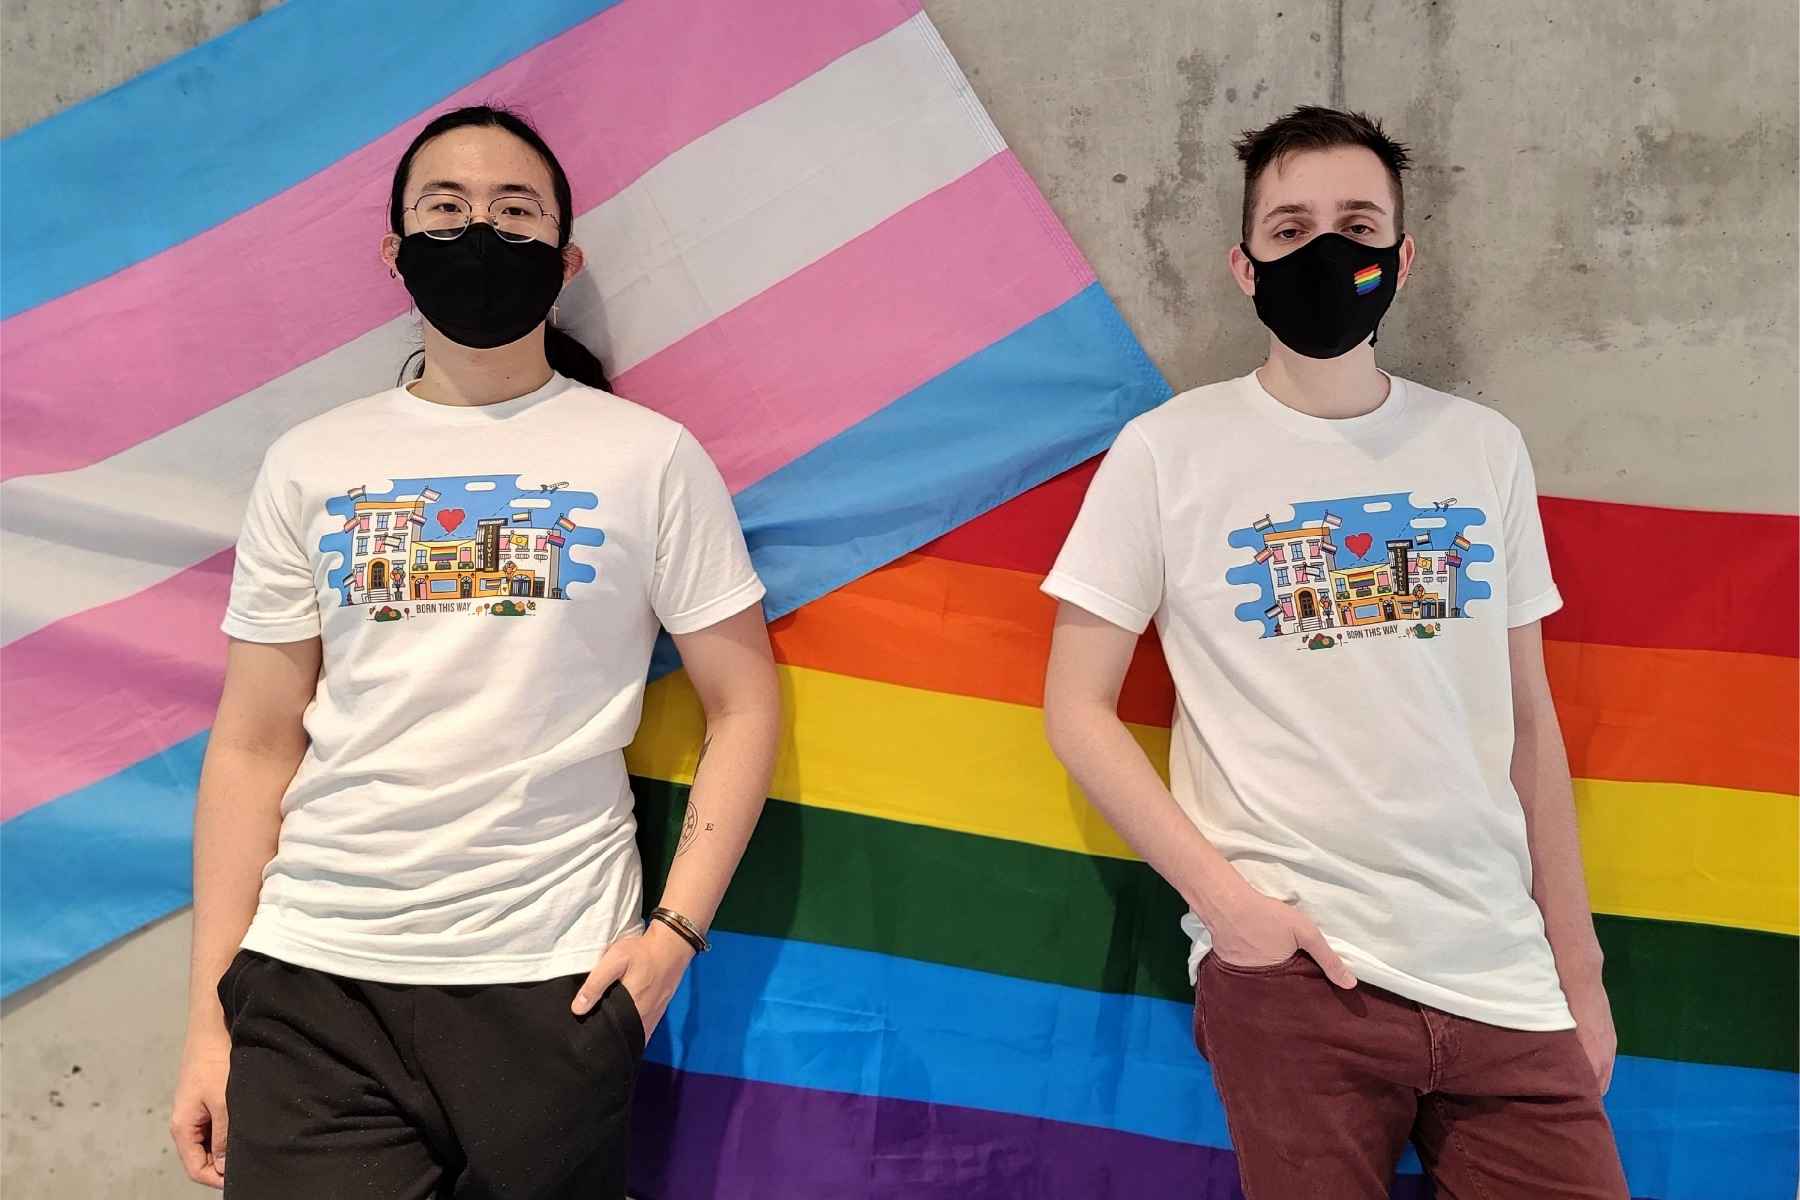 Pride 2021 tee being modelled by two students from the glow center in front of a pride flag and a transgender flag